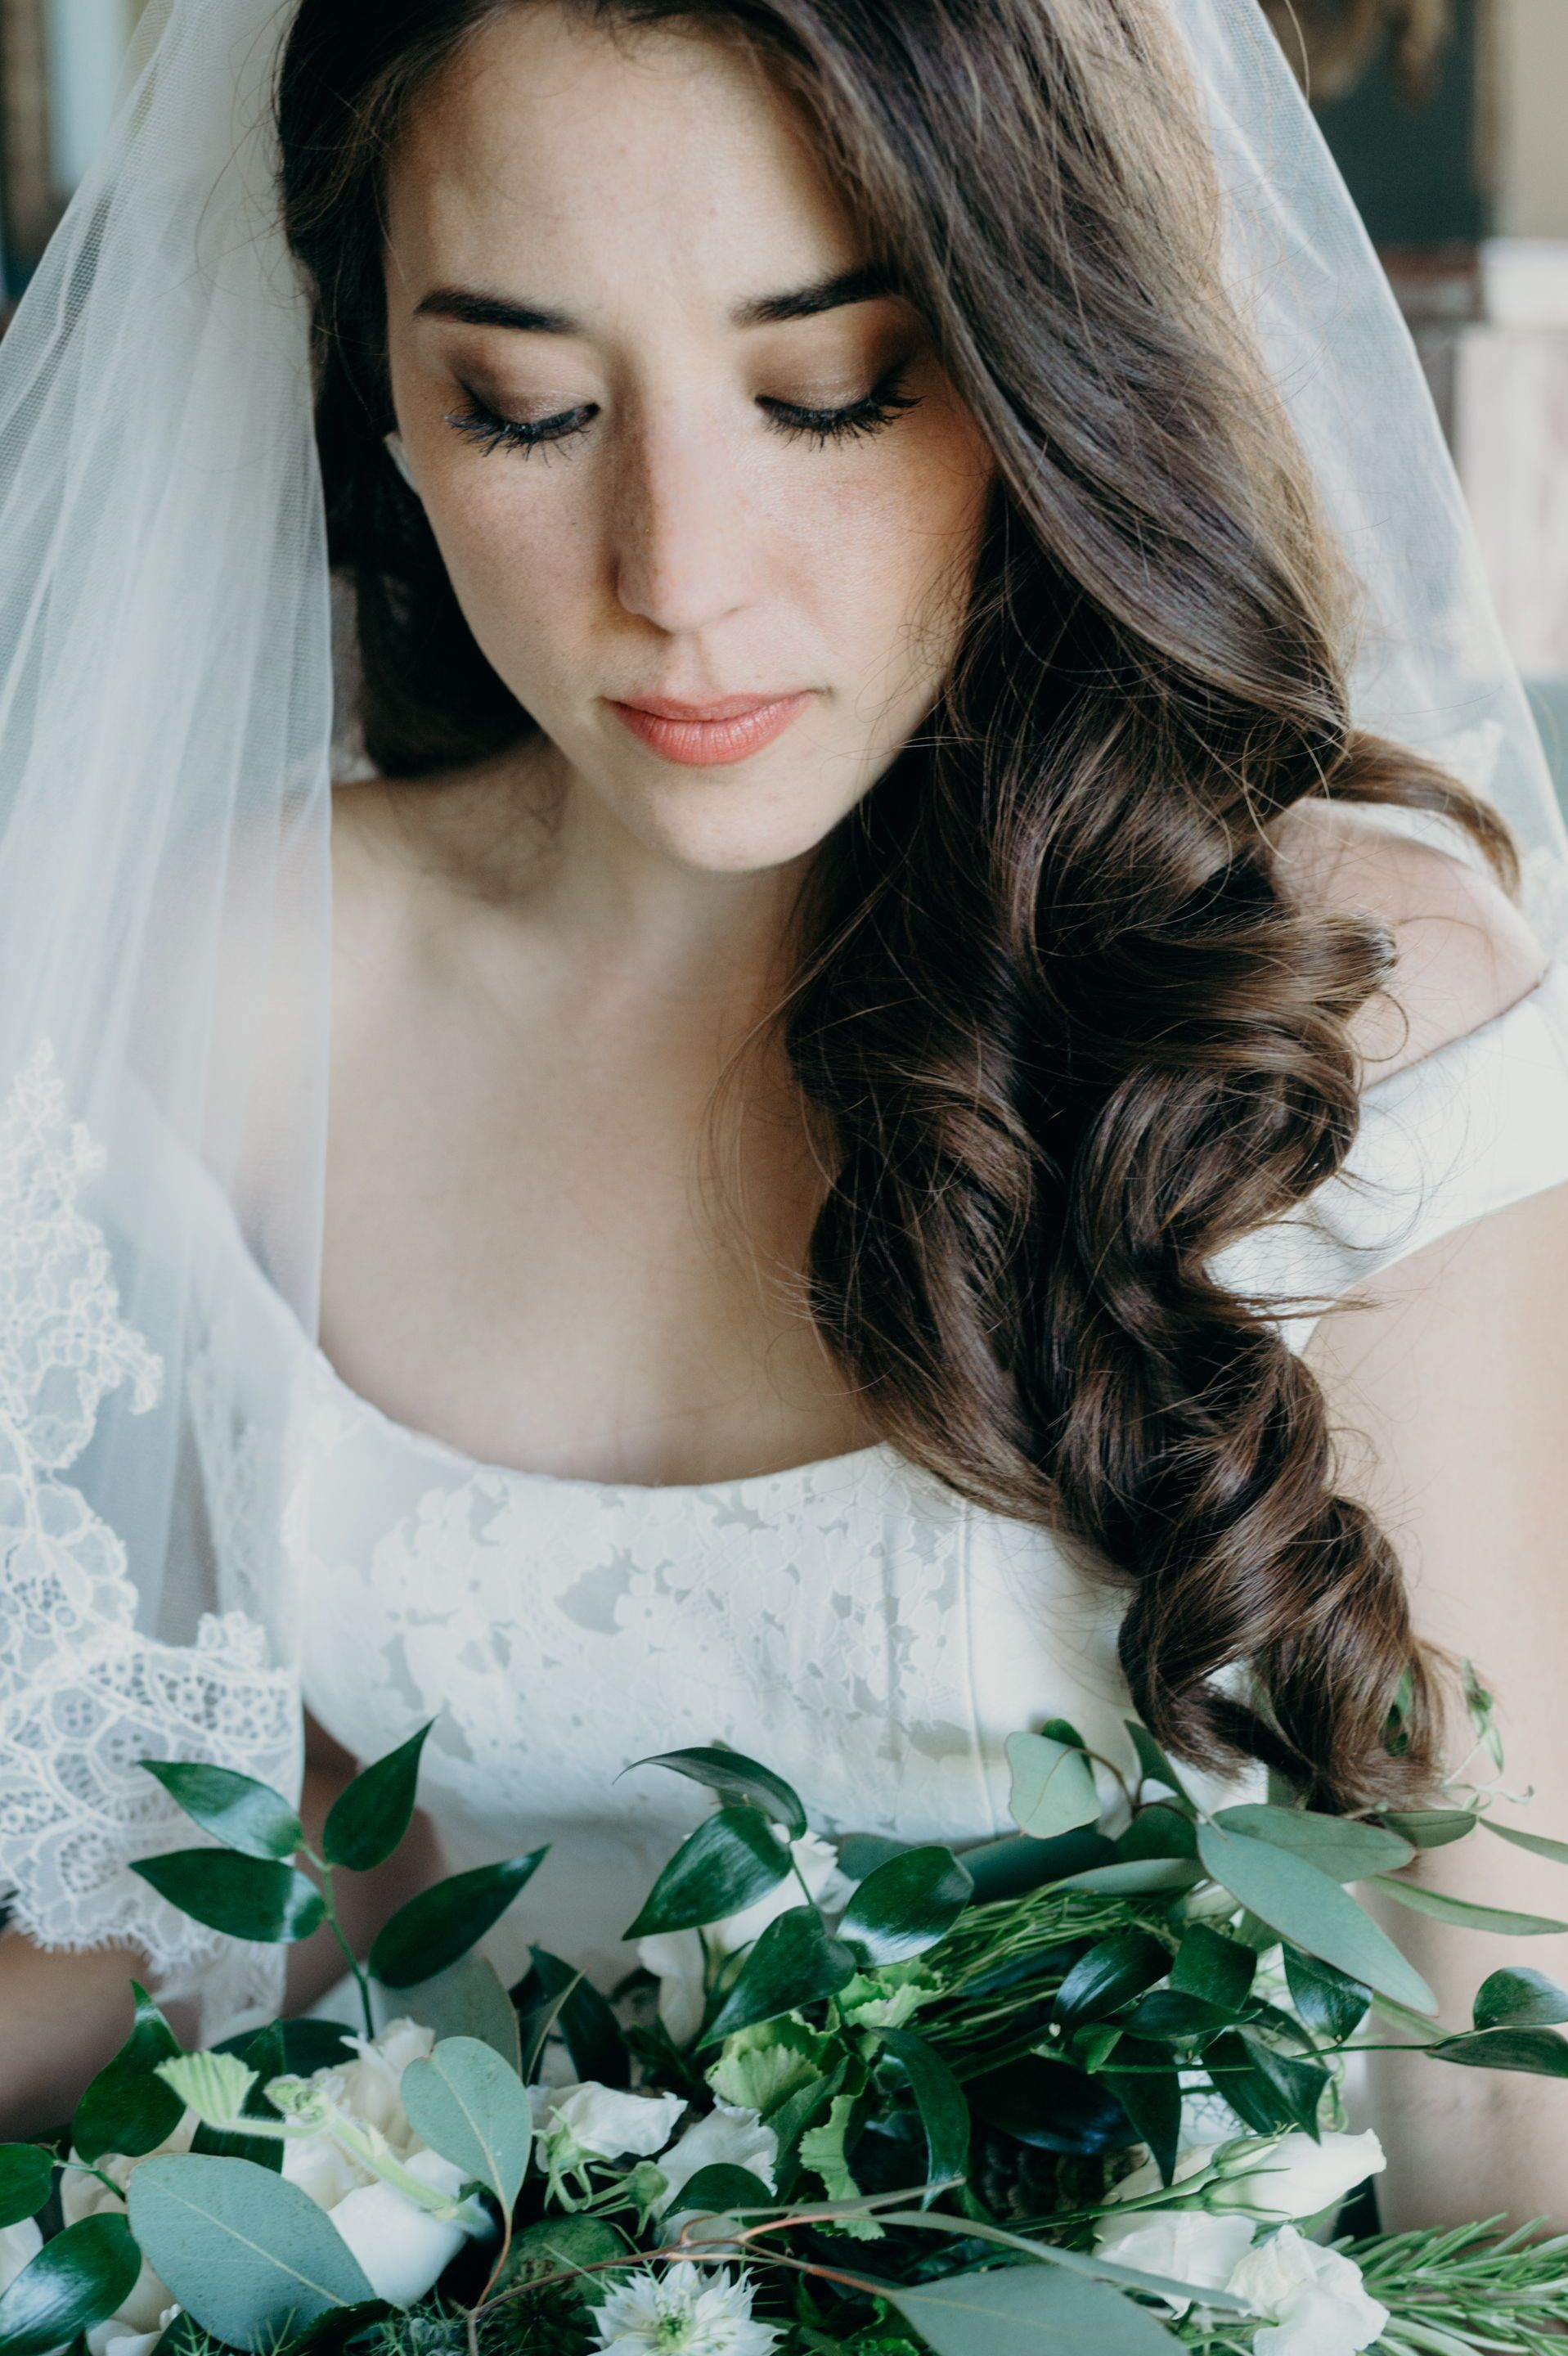 katie slater photography, jennie kay beauty salon, newport wedding